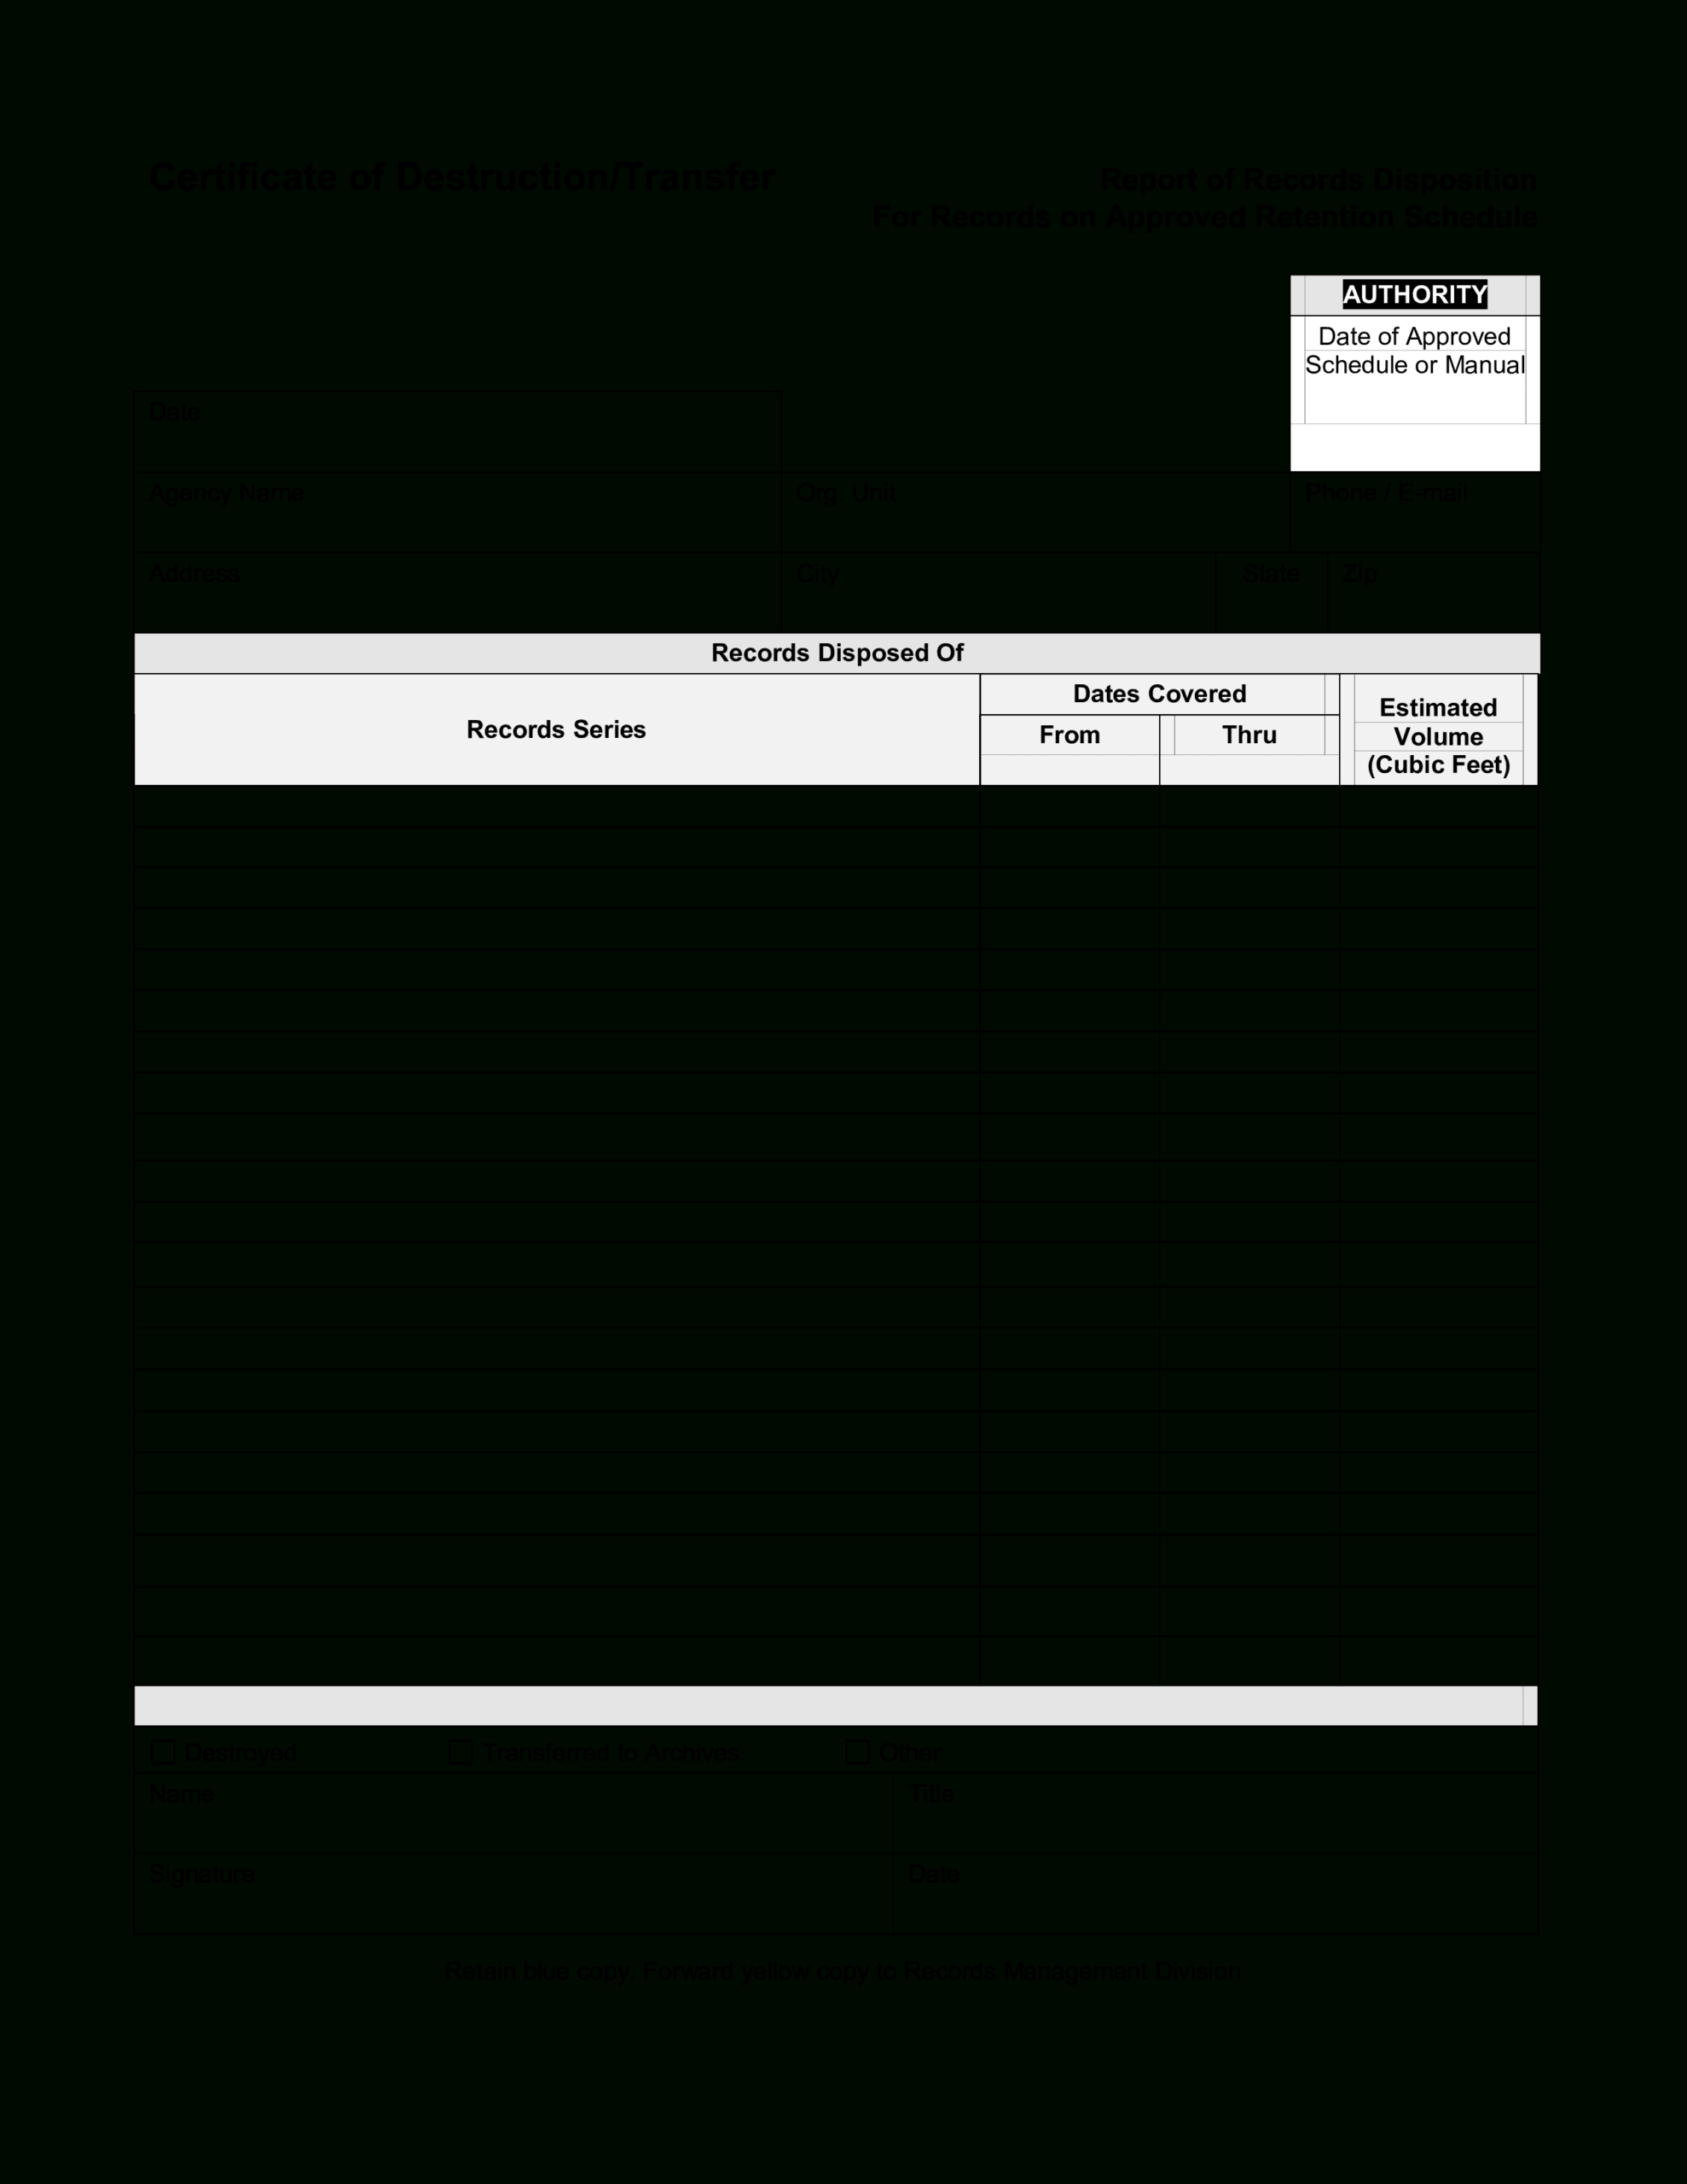 Blank Certificate Of Destruction   Templates At Throughout Destruction Certificate Template